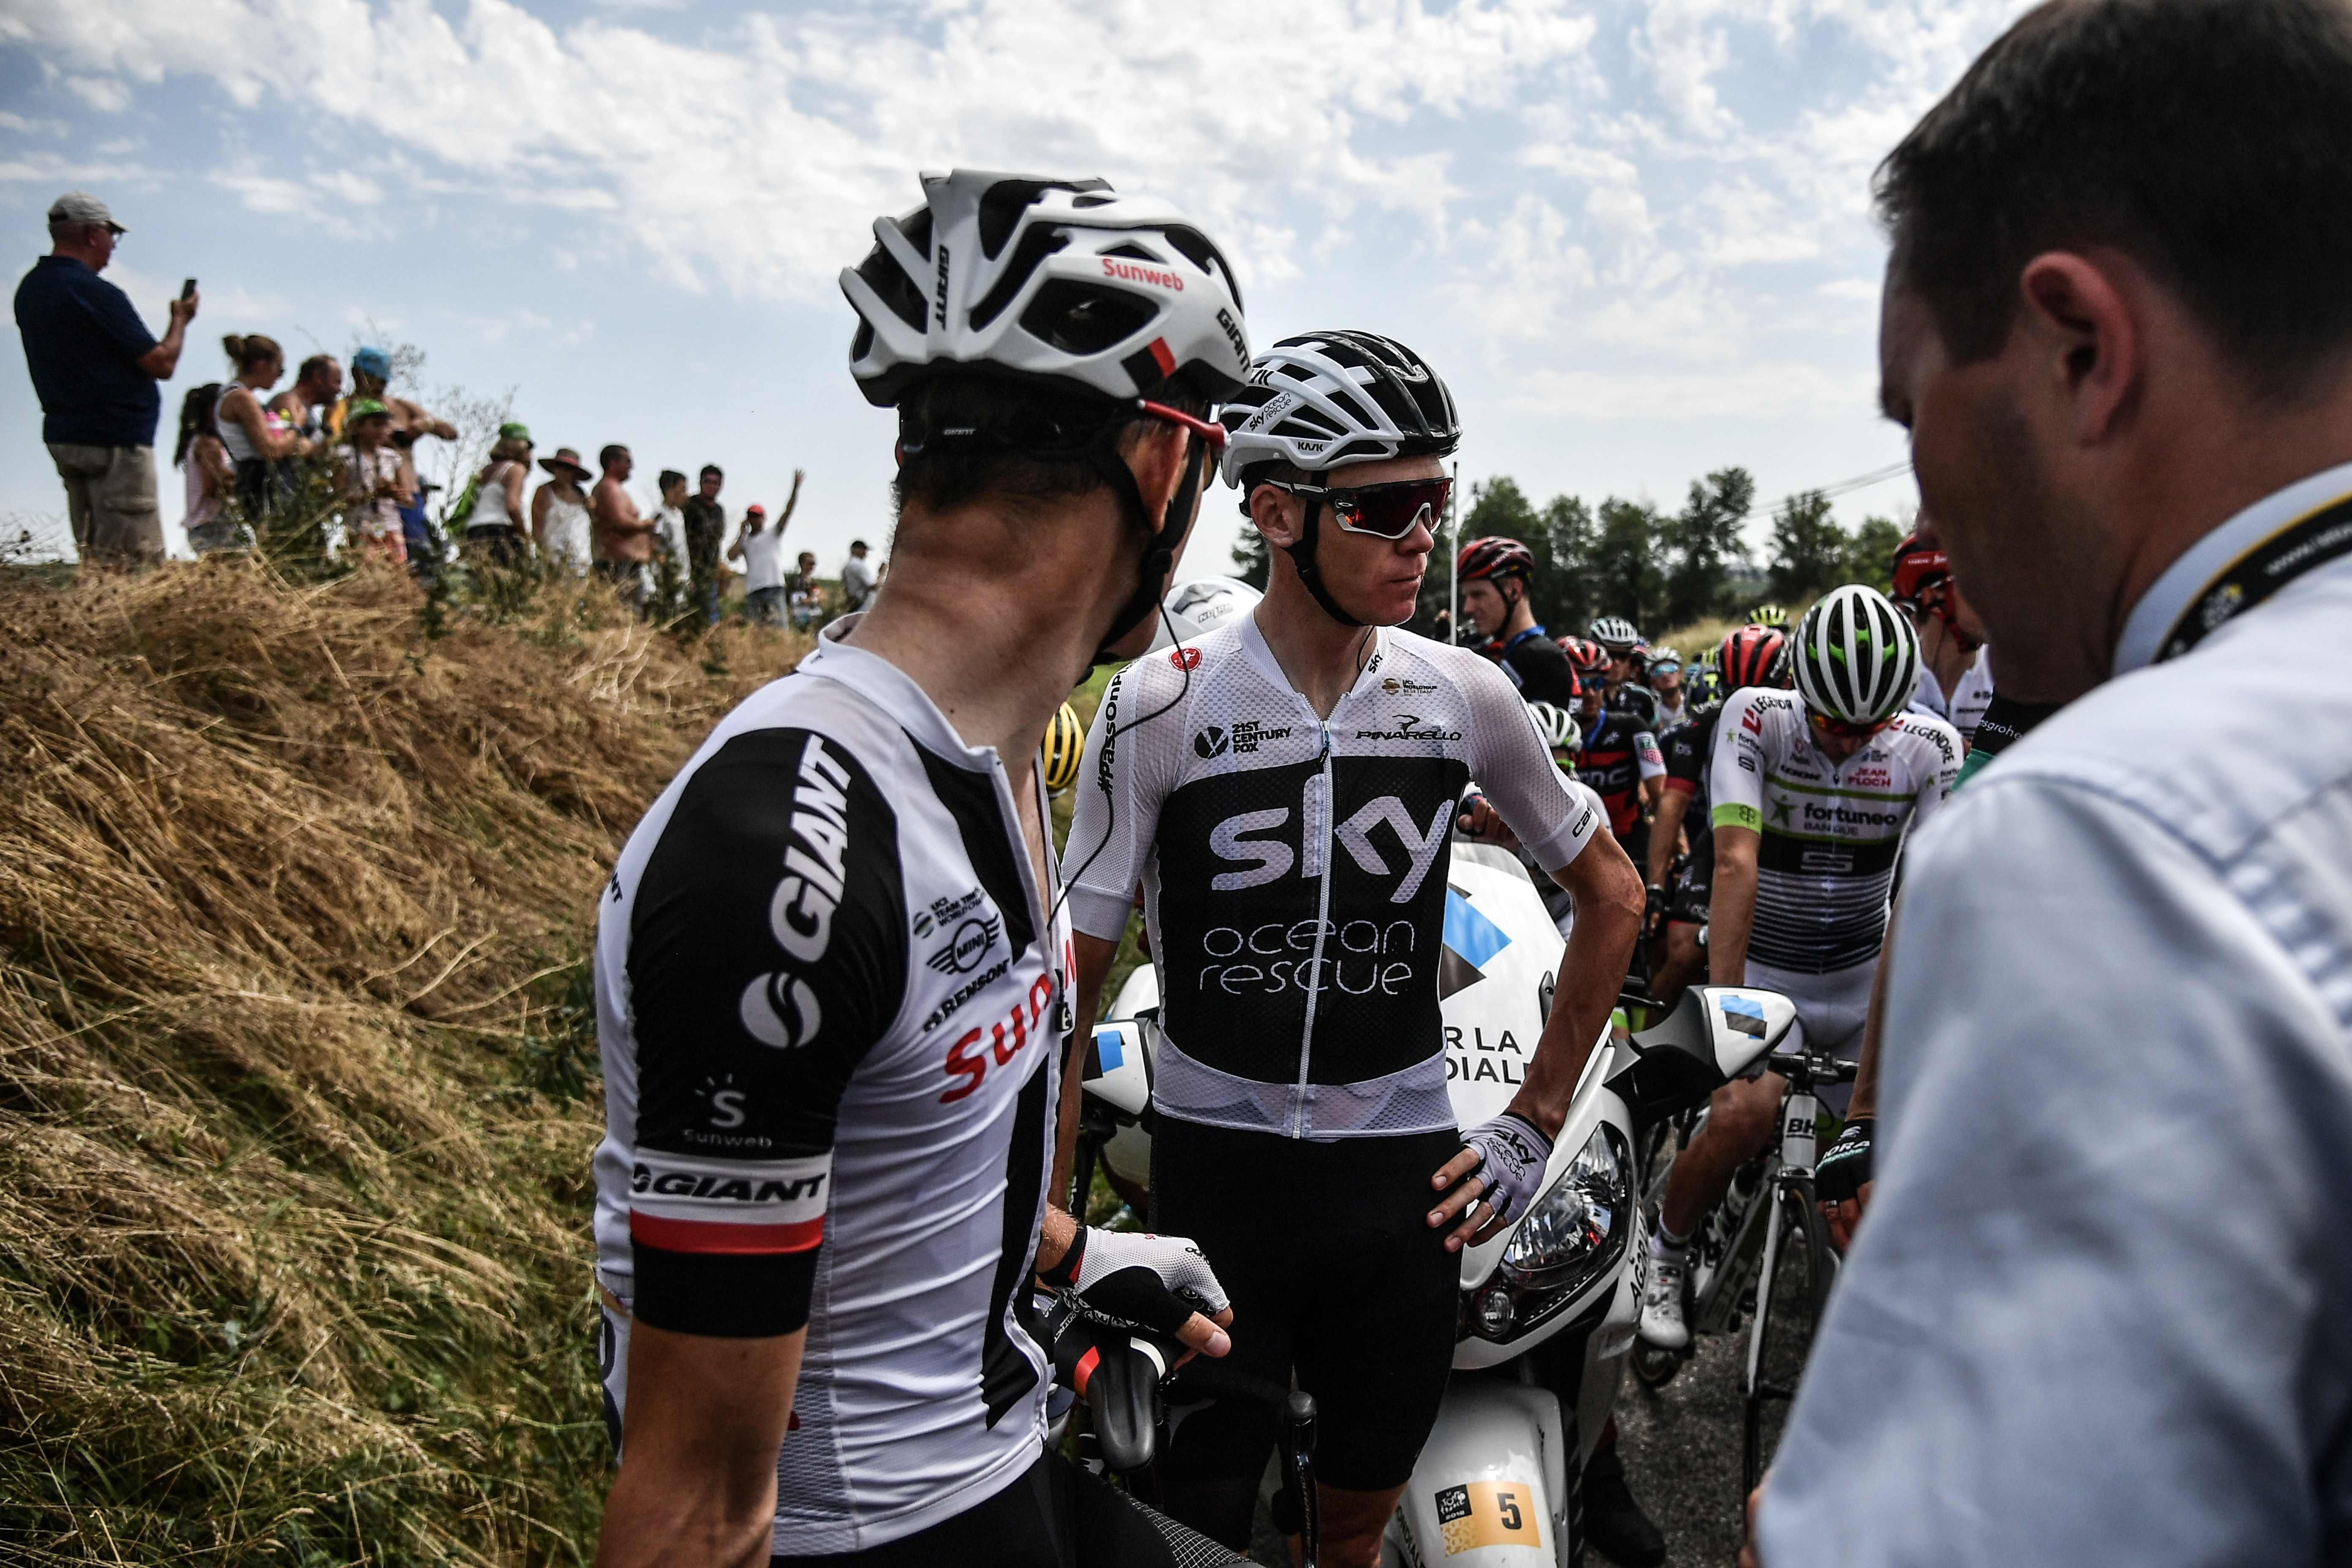 Chris Froome stood by the road chatting to rivals after the race was neutralised for around 15 minutes